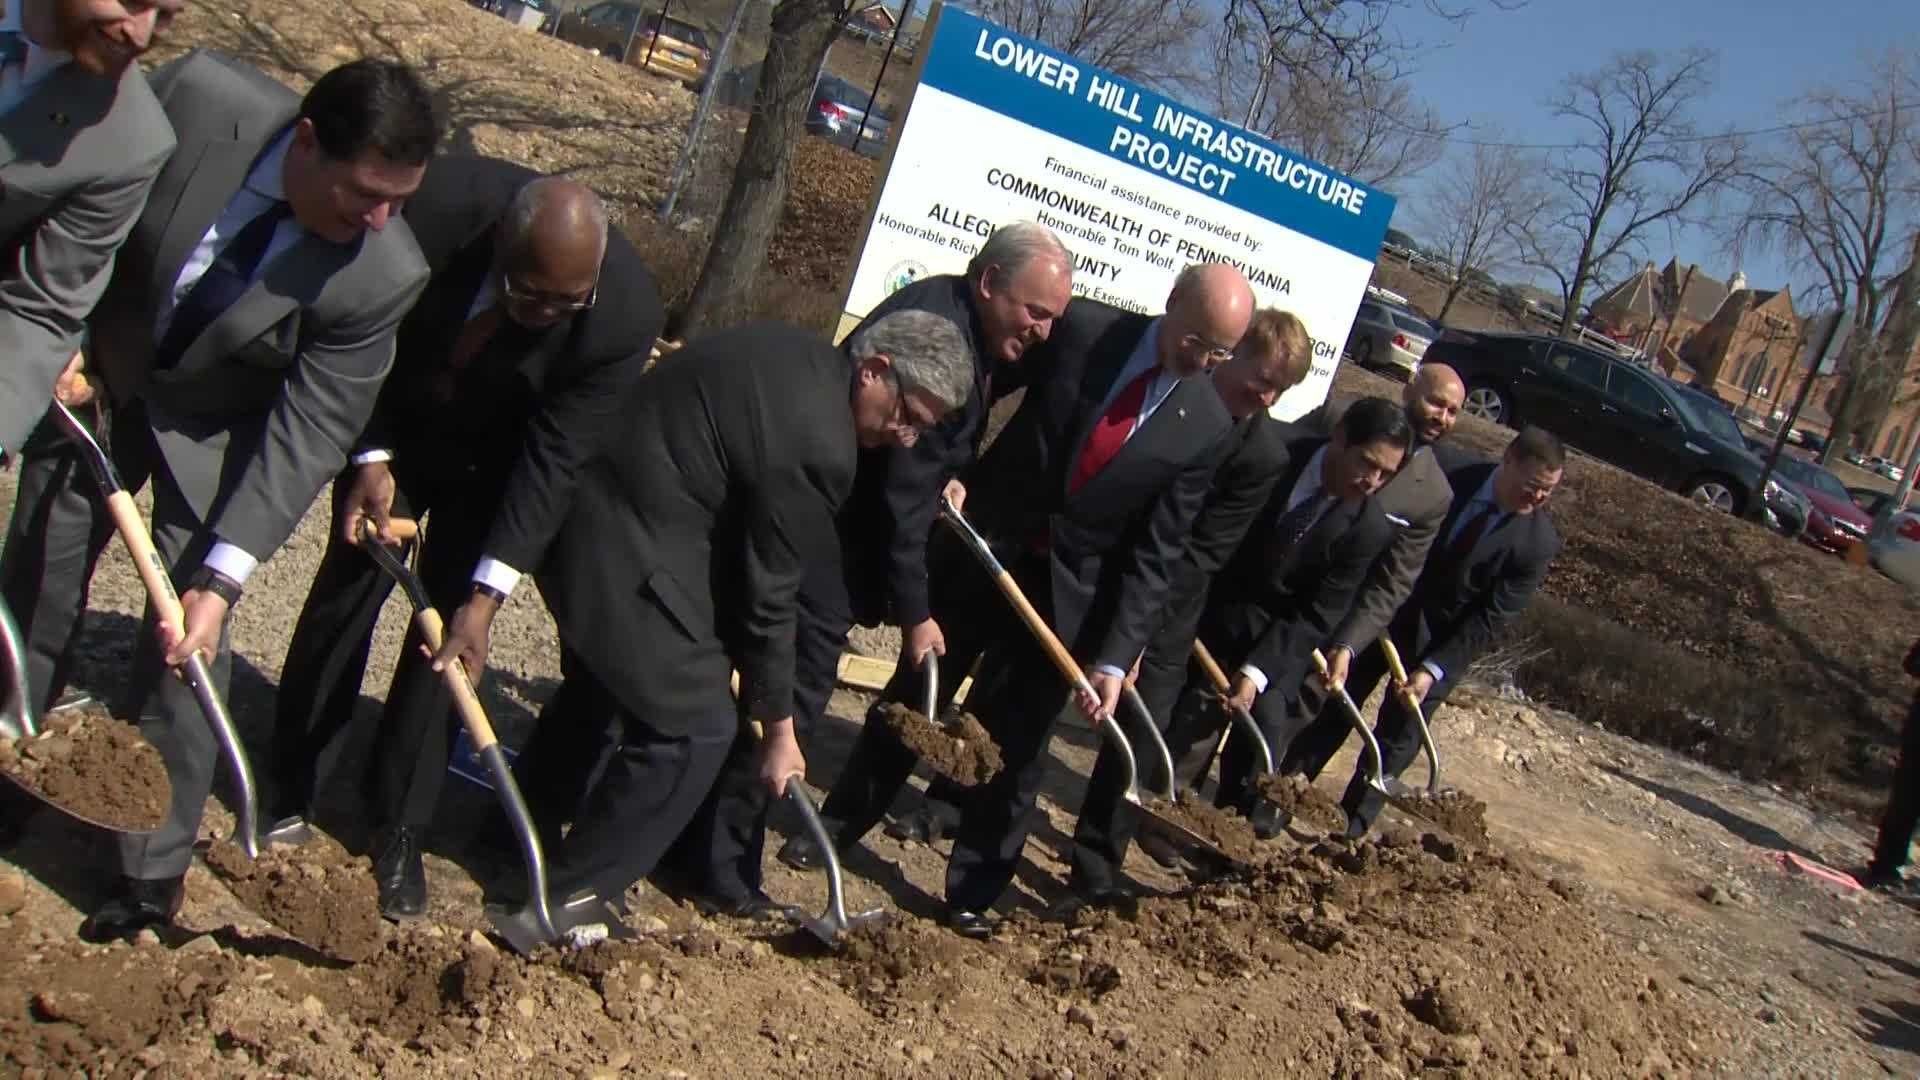 Groundbreaking marks start of street grid work for Lower Hill Infrastructure Project